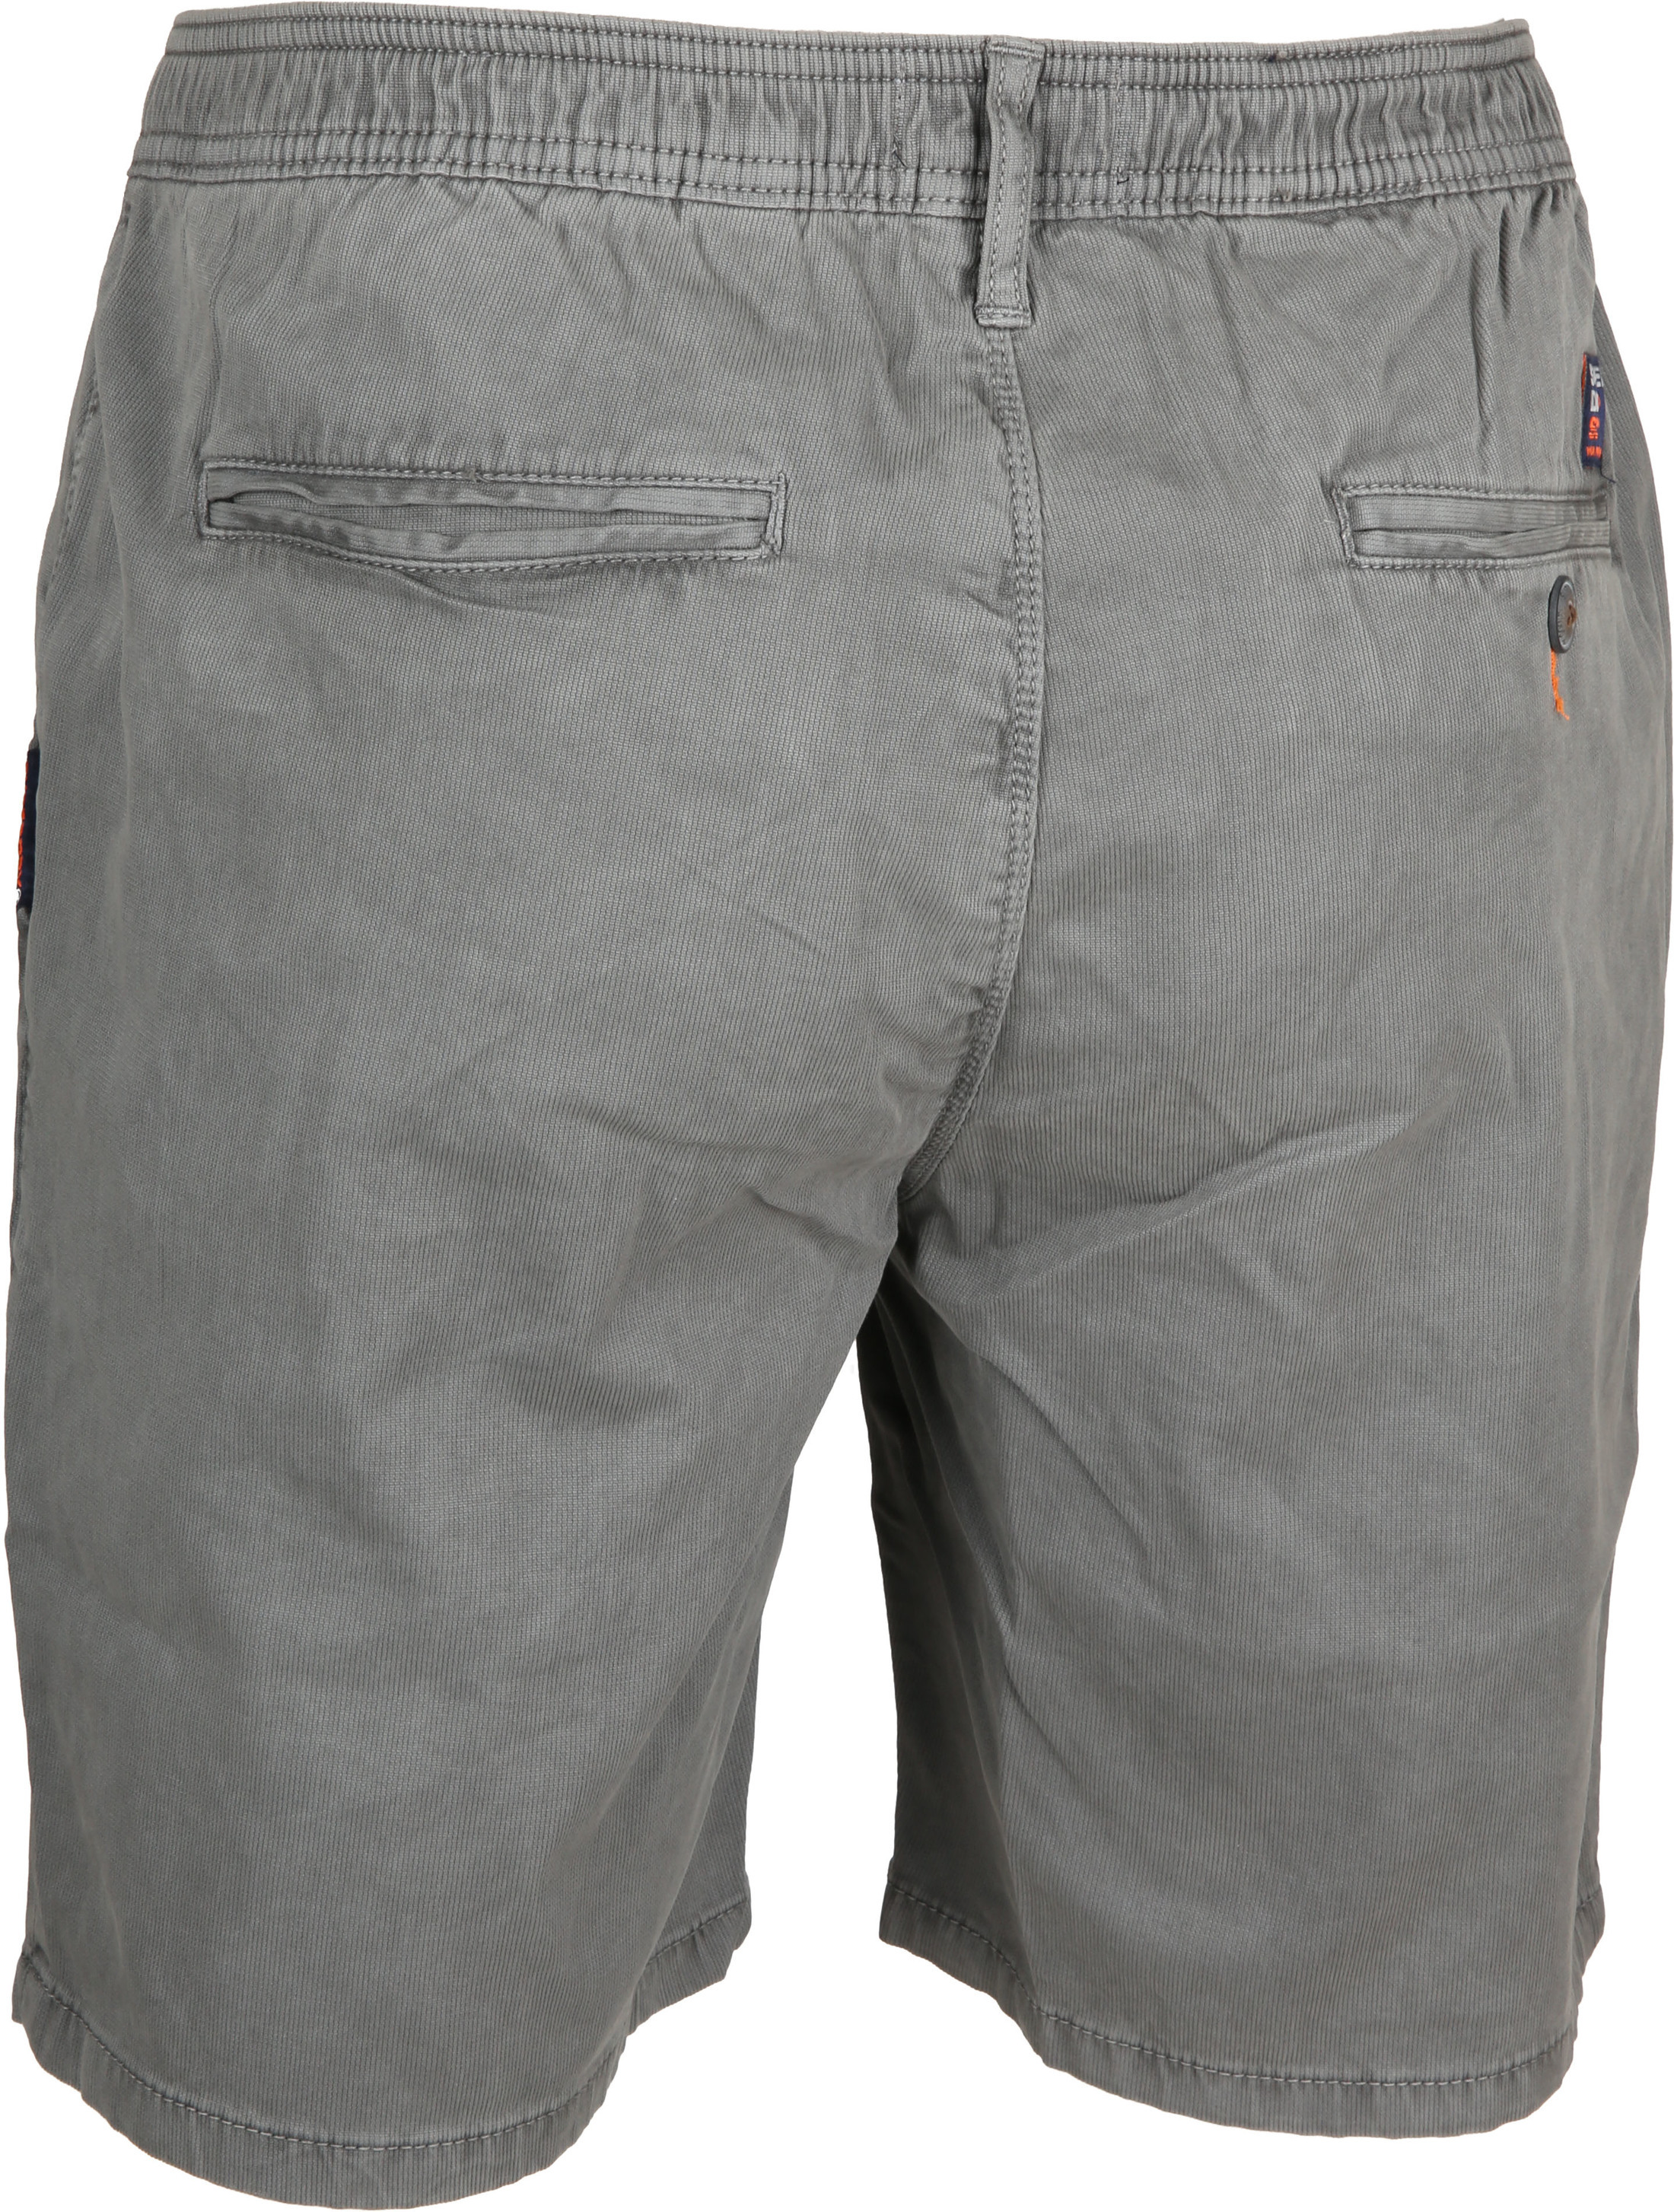 Superdry Sunscorched Short Grey foto 3